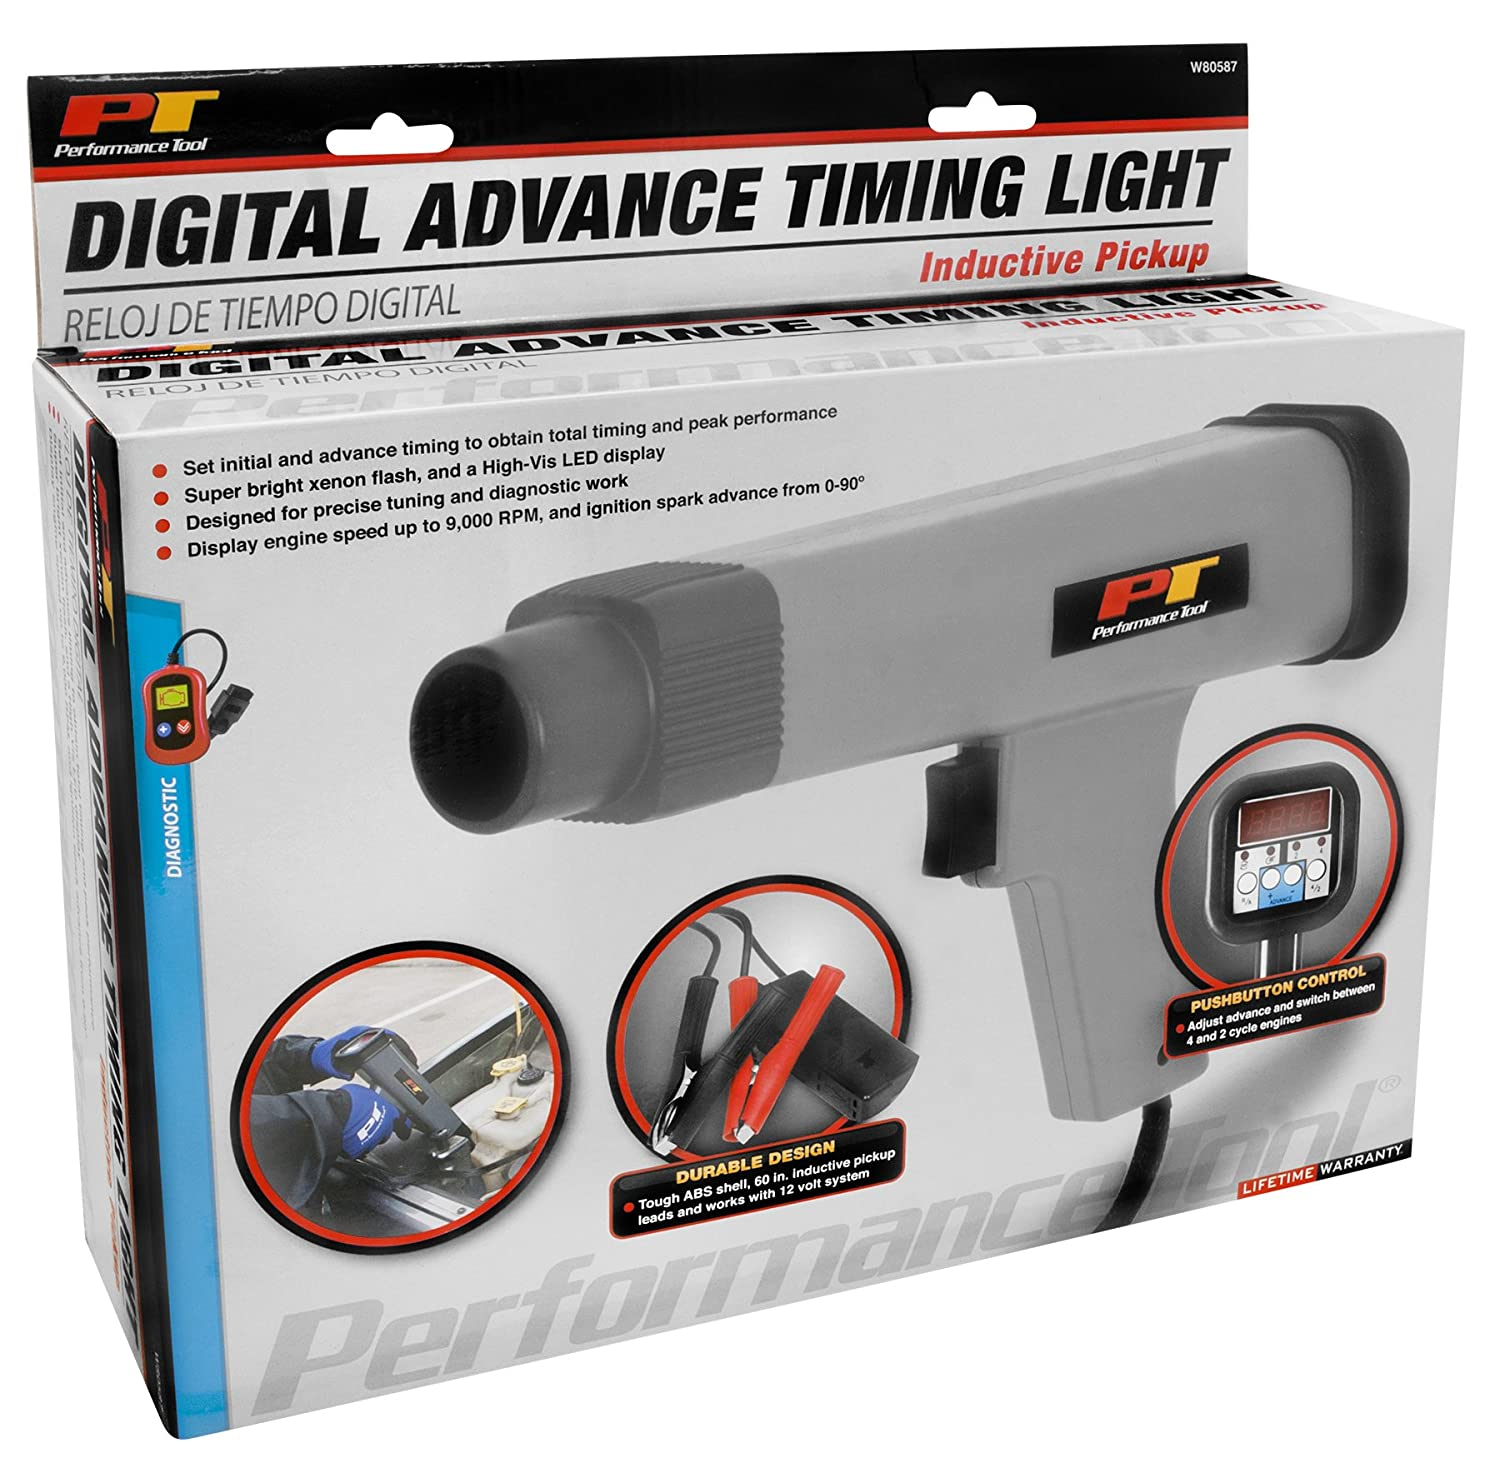 Performance Tool W80587 Digital Advance Timing Light Digital Advance Timing  Light